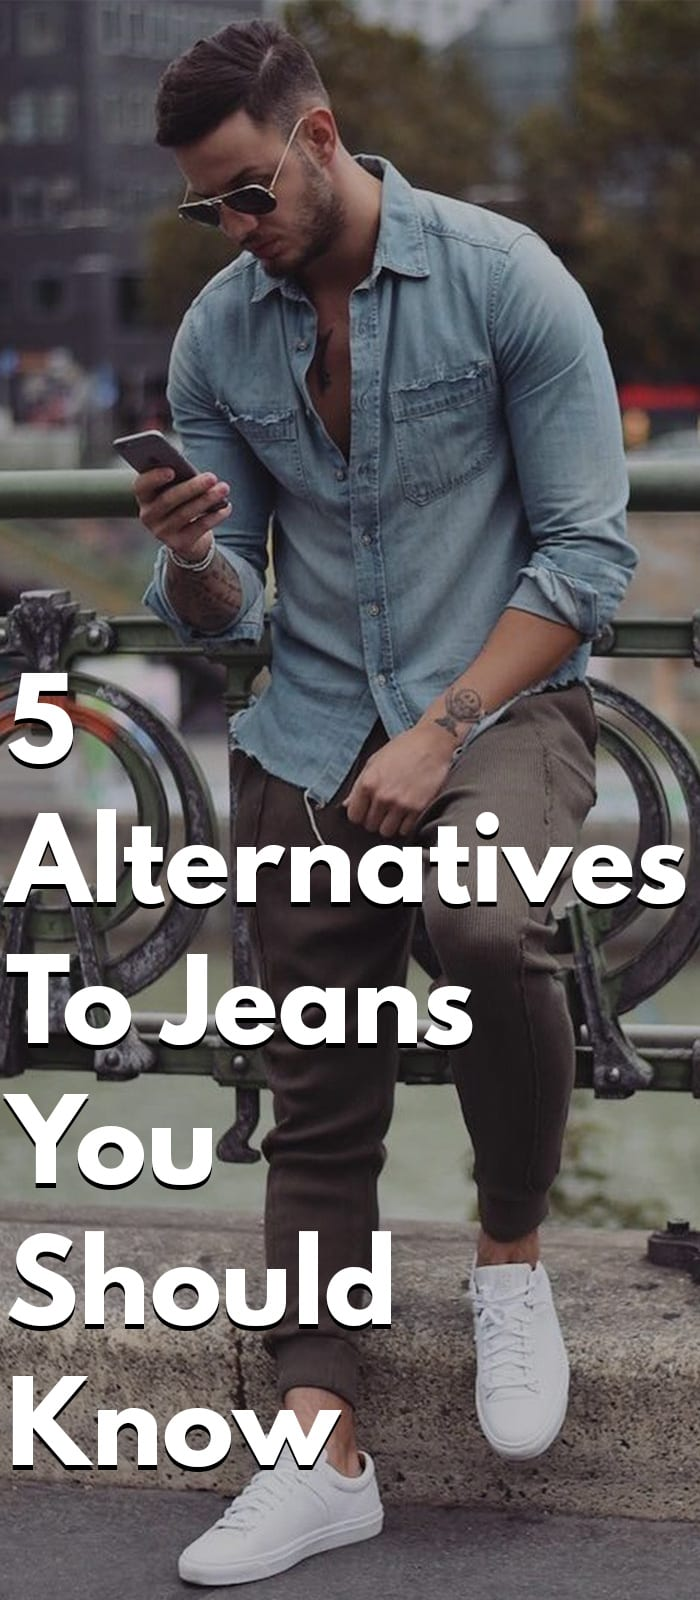 5 Alternatives To Jeans - Chino, Trouser, Joggers, Etc